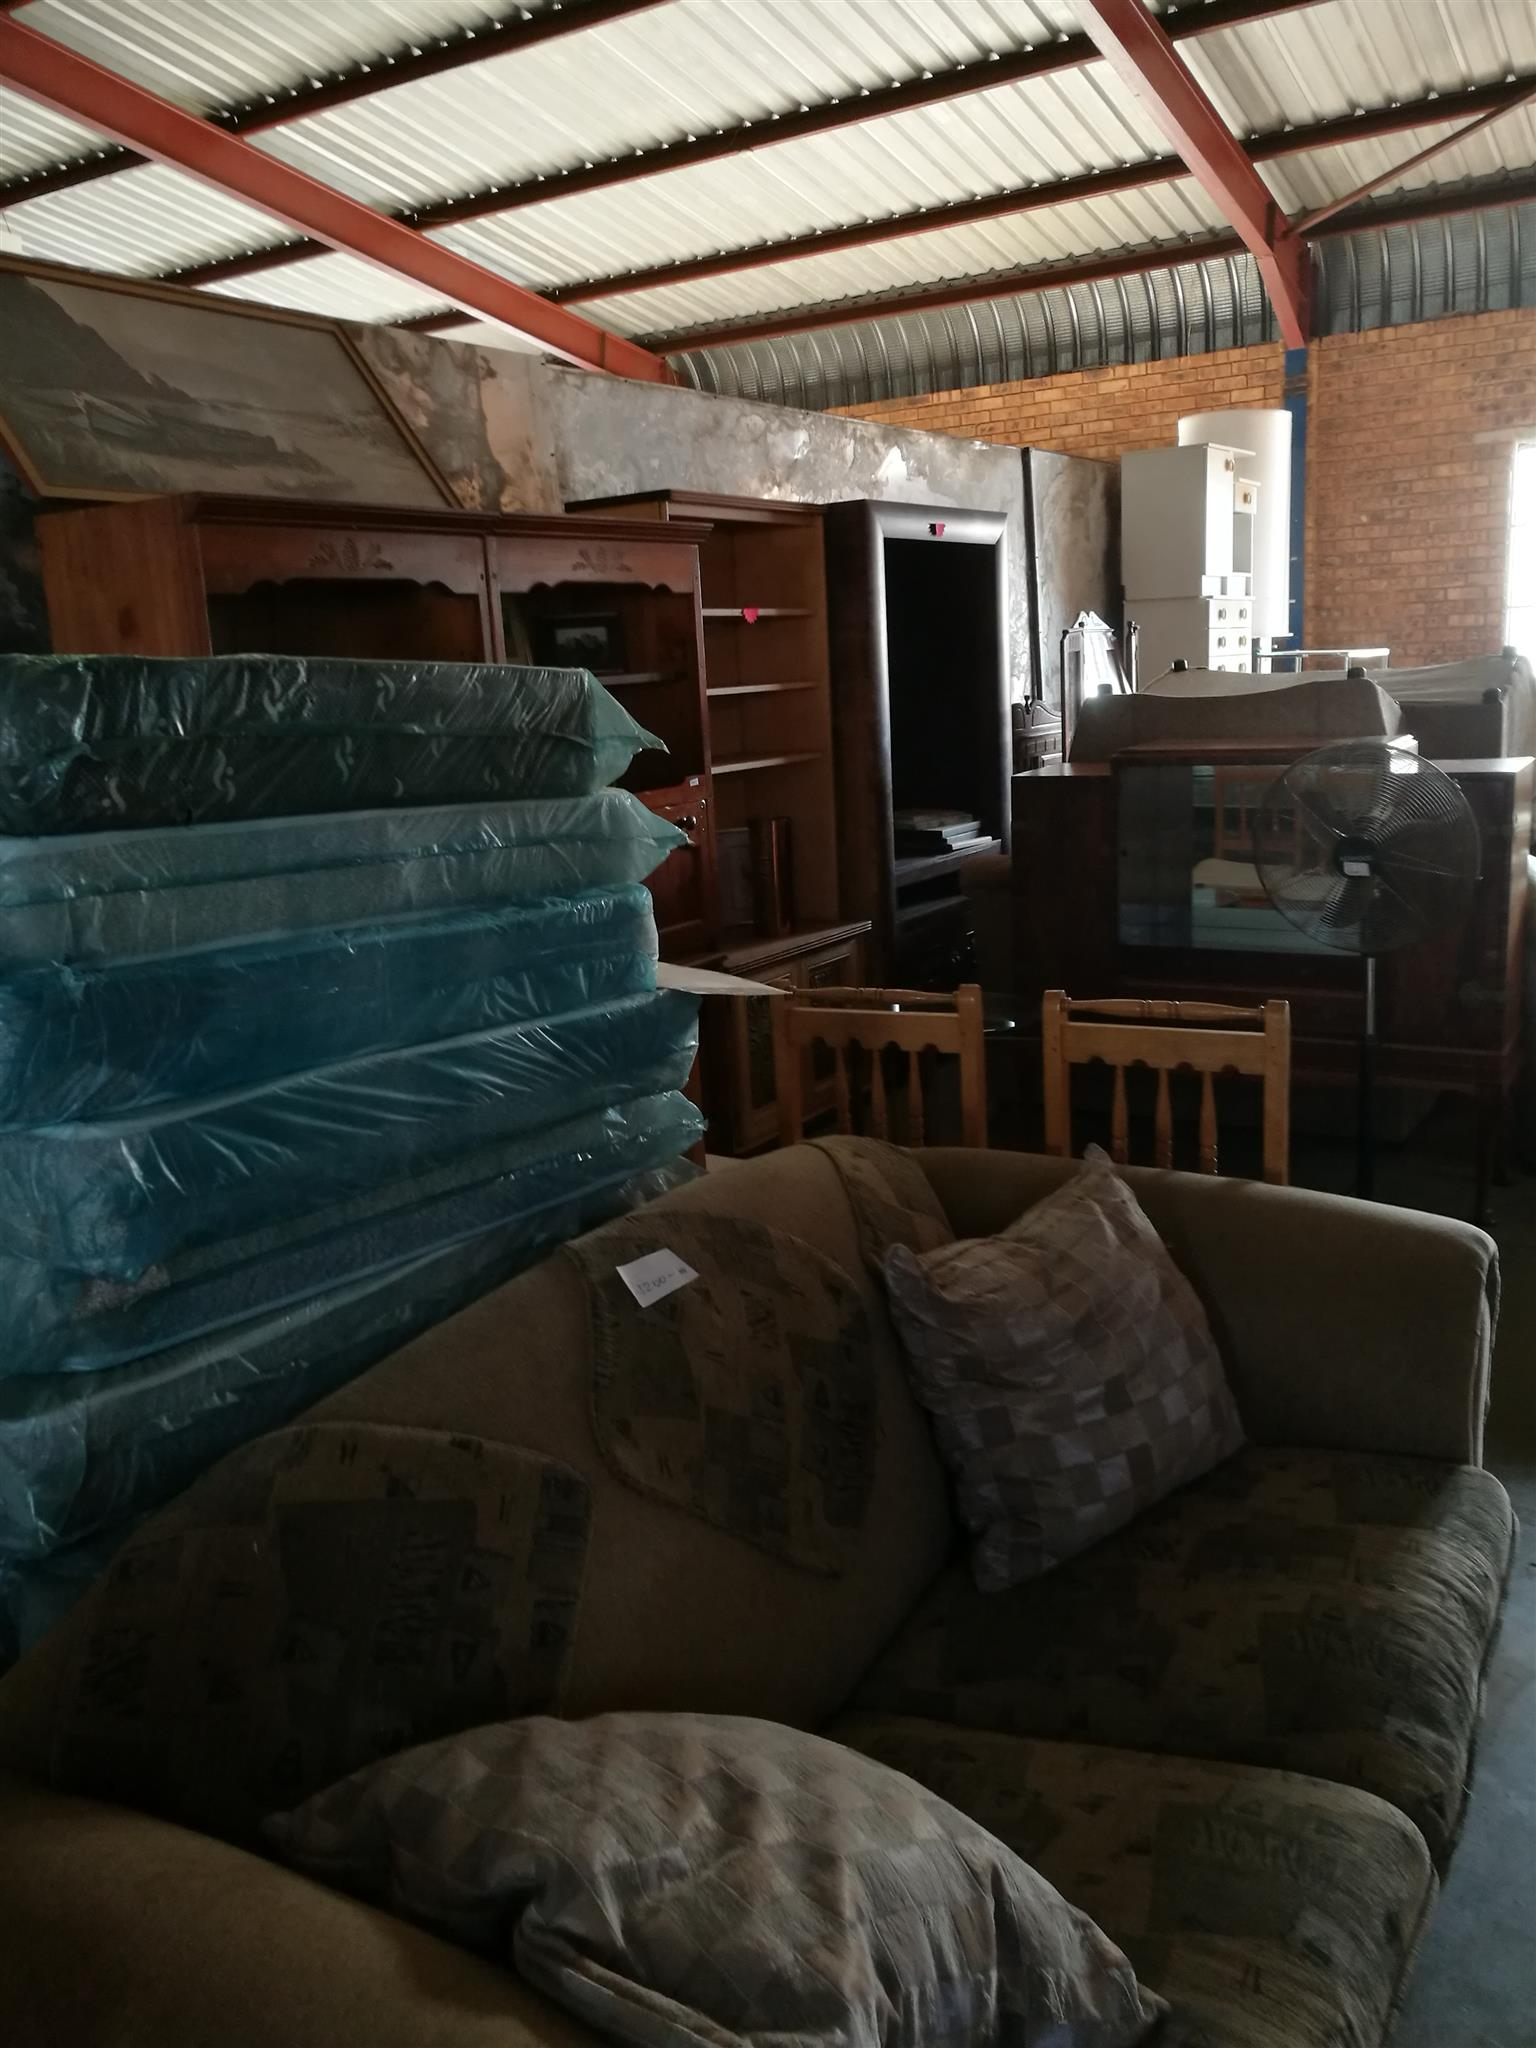 Are you emigrating, semigrating or downsizing? I buy complete household contents. For fast friendly service. 082 893 5338.